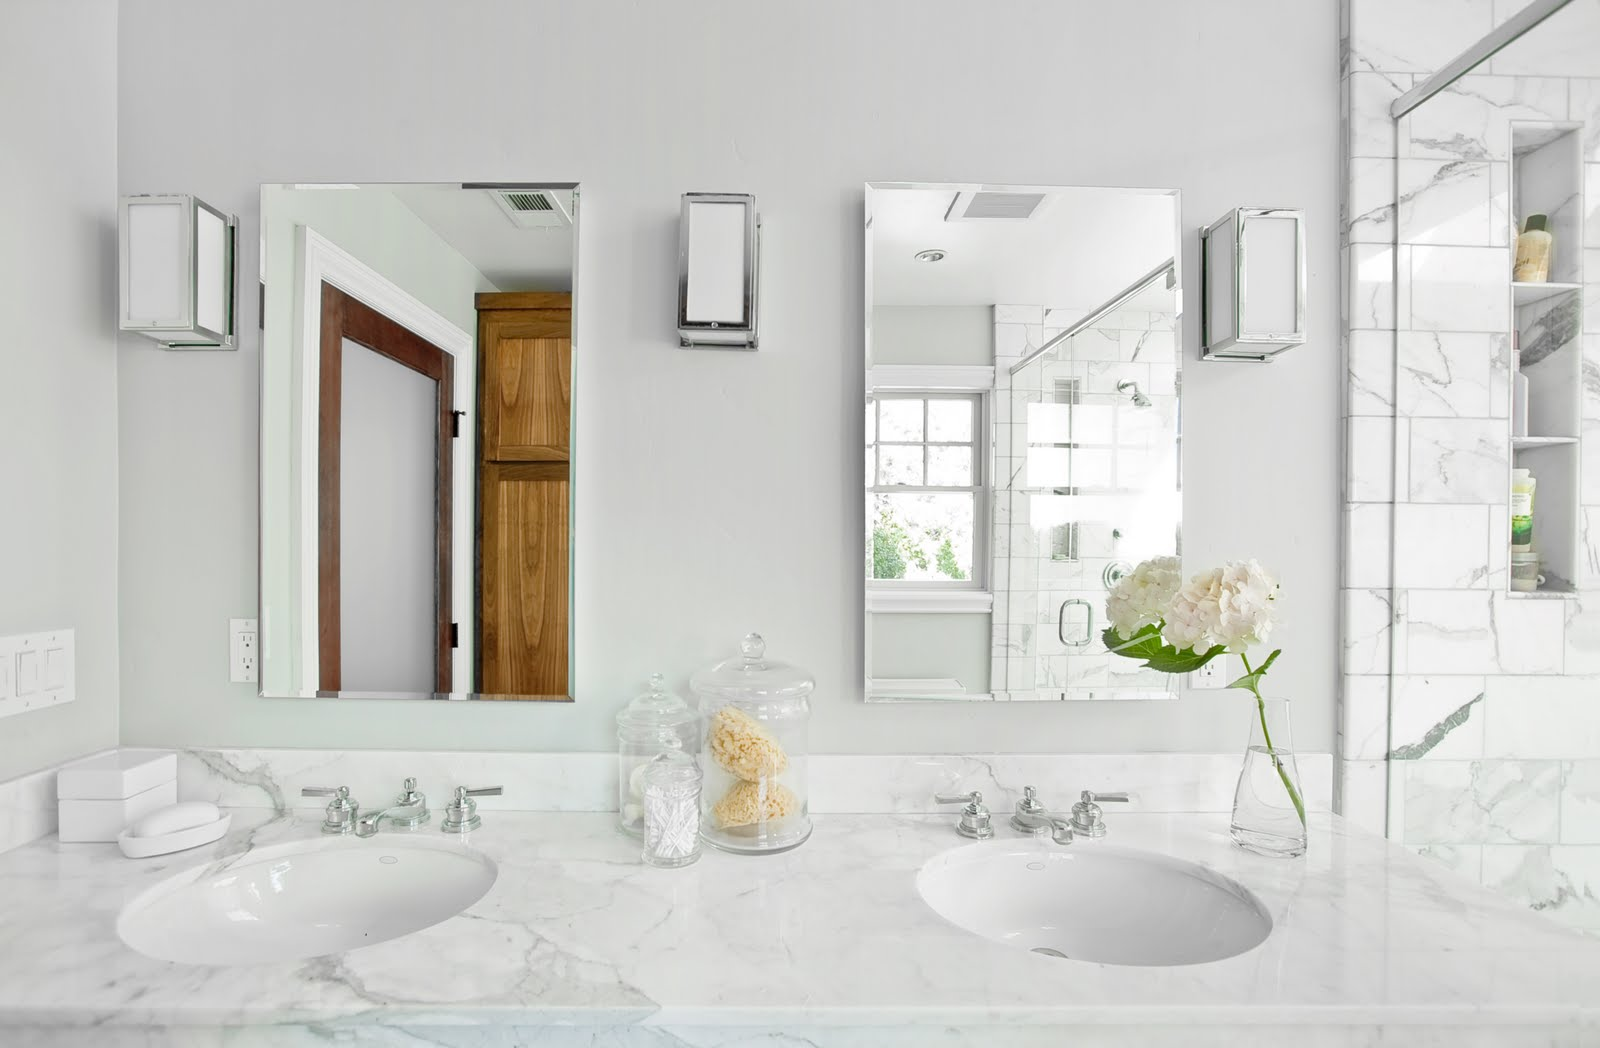 White Carrara Marble Bathroom Vanity Tops With Faucet And